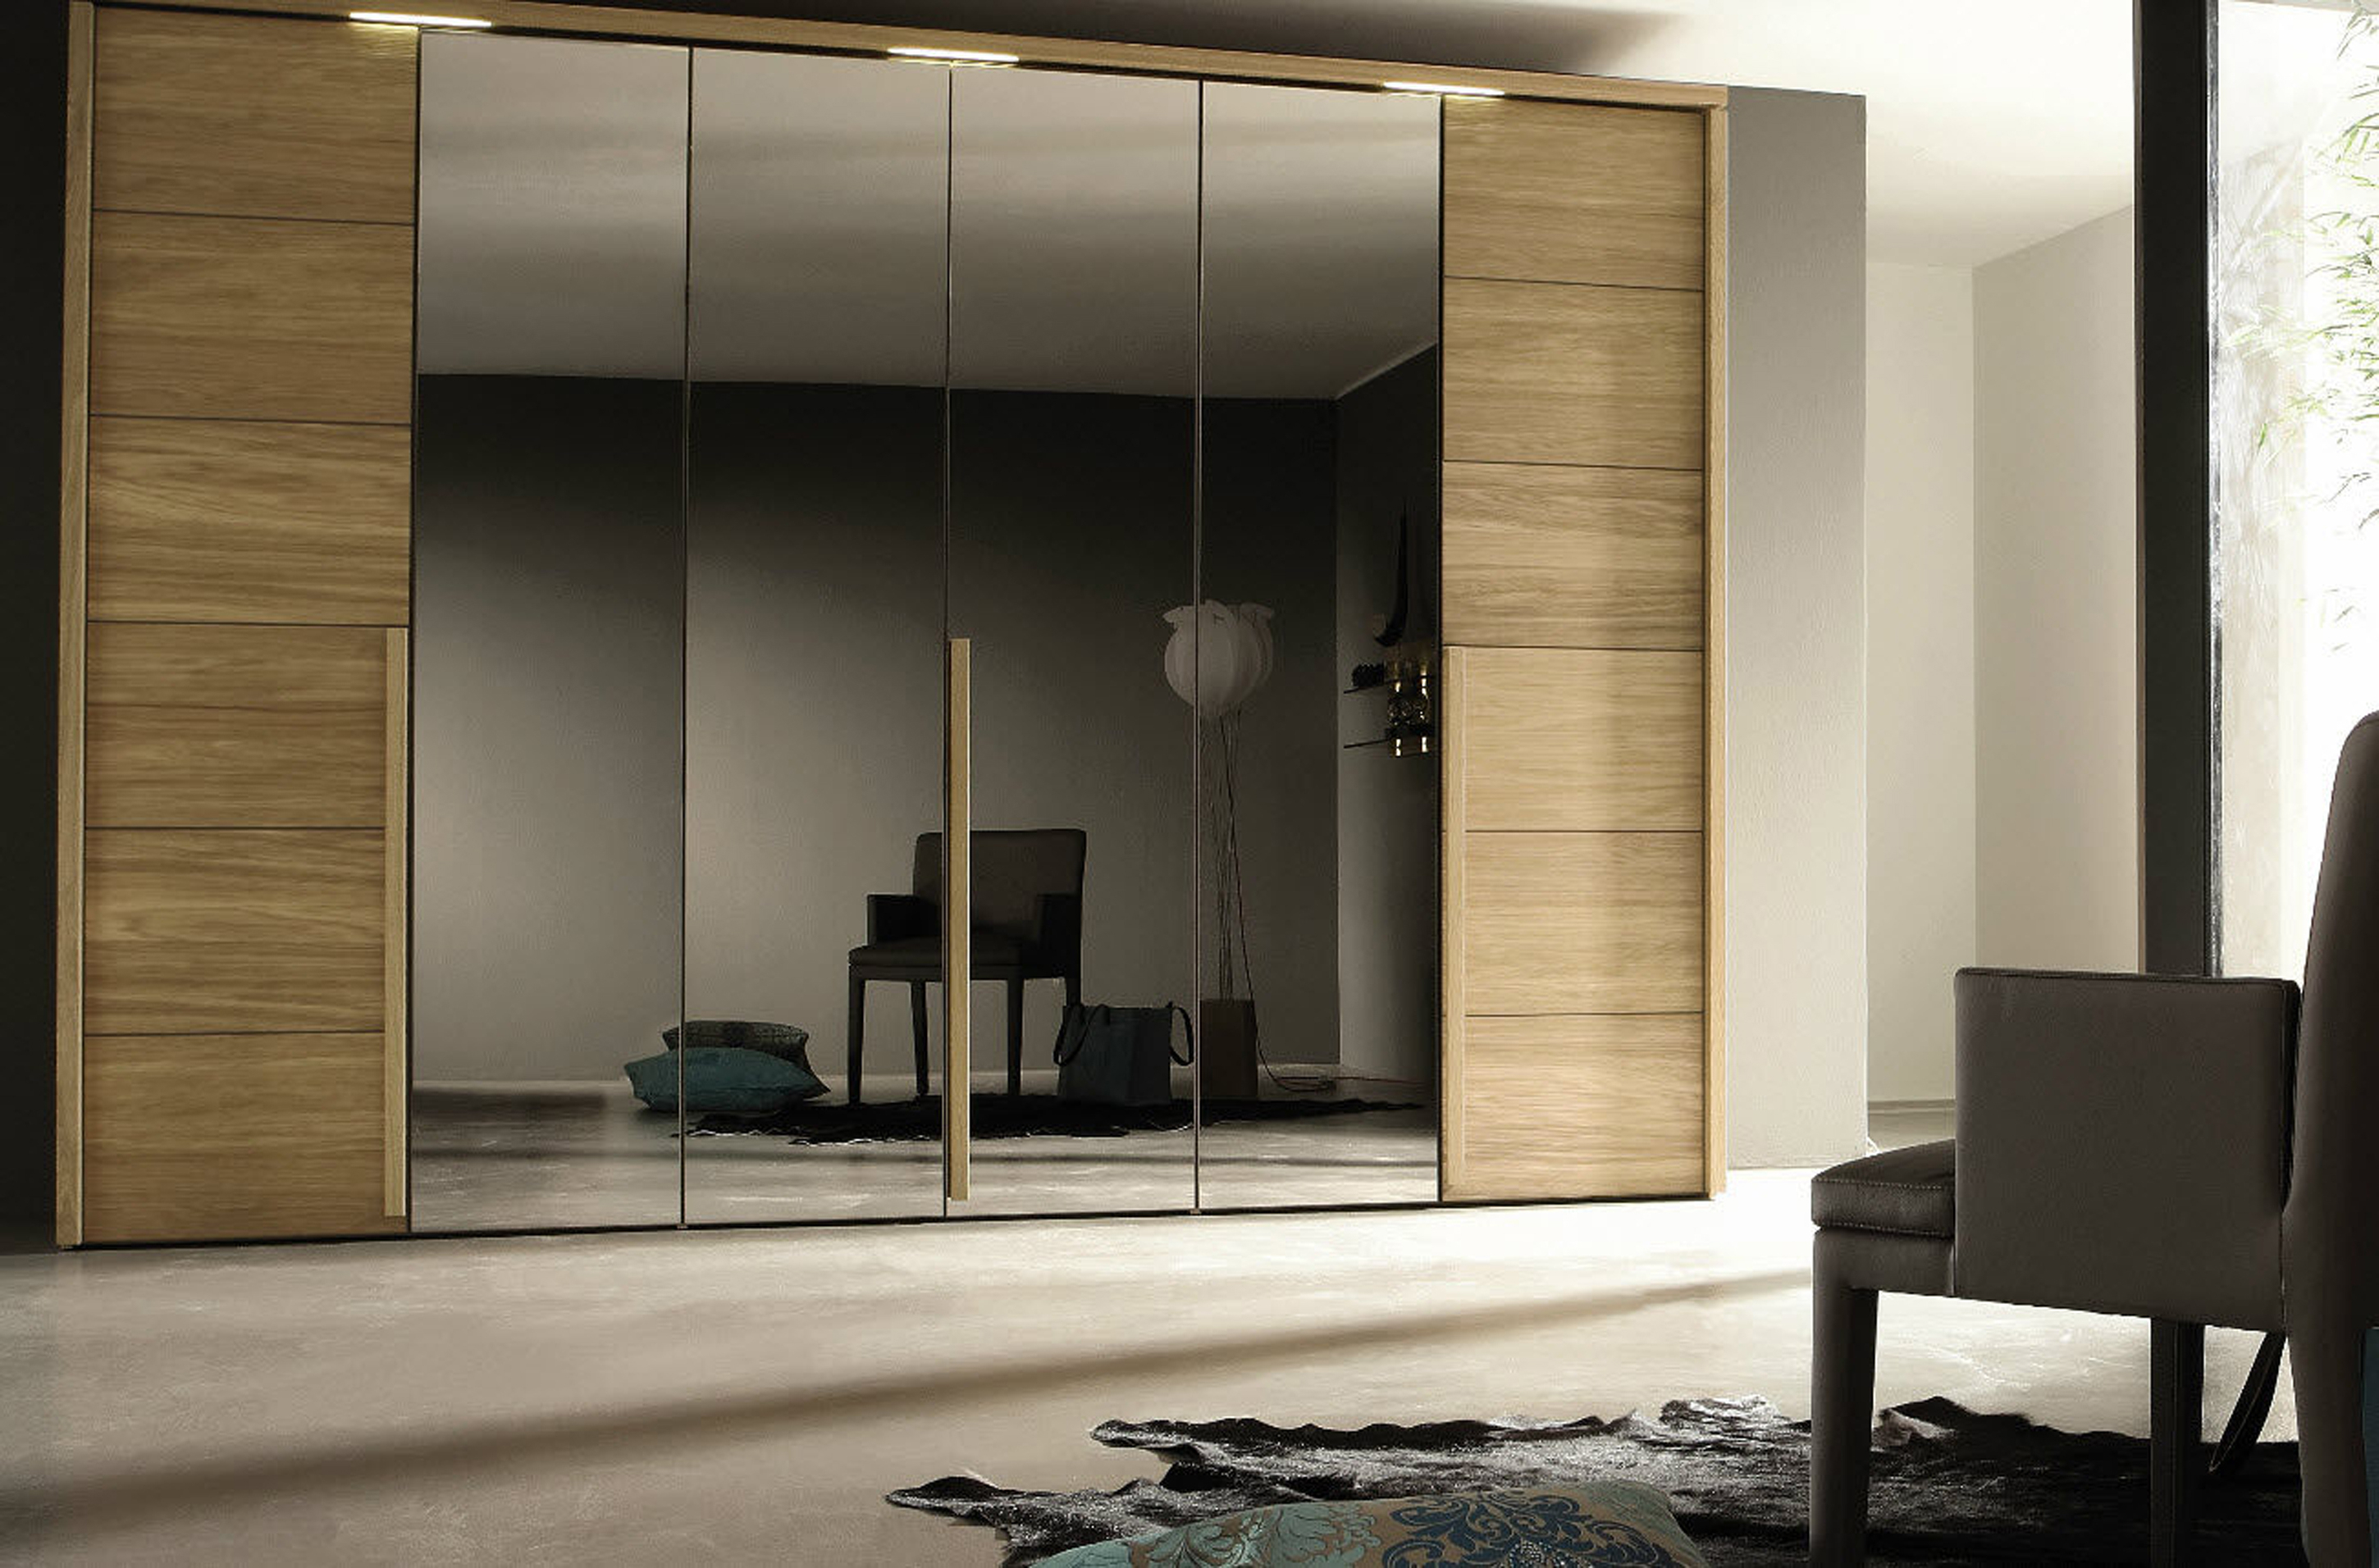 Luxury Modern Brown Wardrobe Design Idea With Mirror White Wall And Cream Floor Tile Charming Modern Wardrobe Design Ideas (Image 98 of 123)